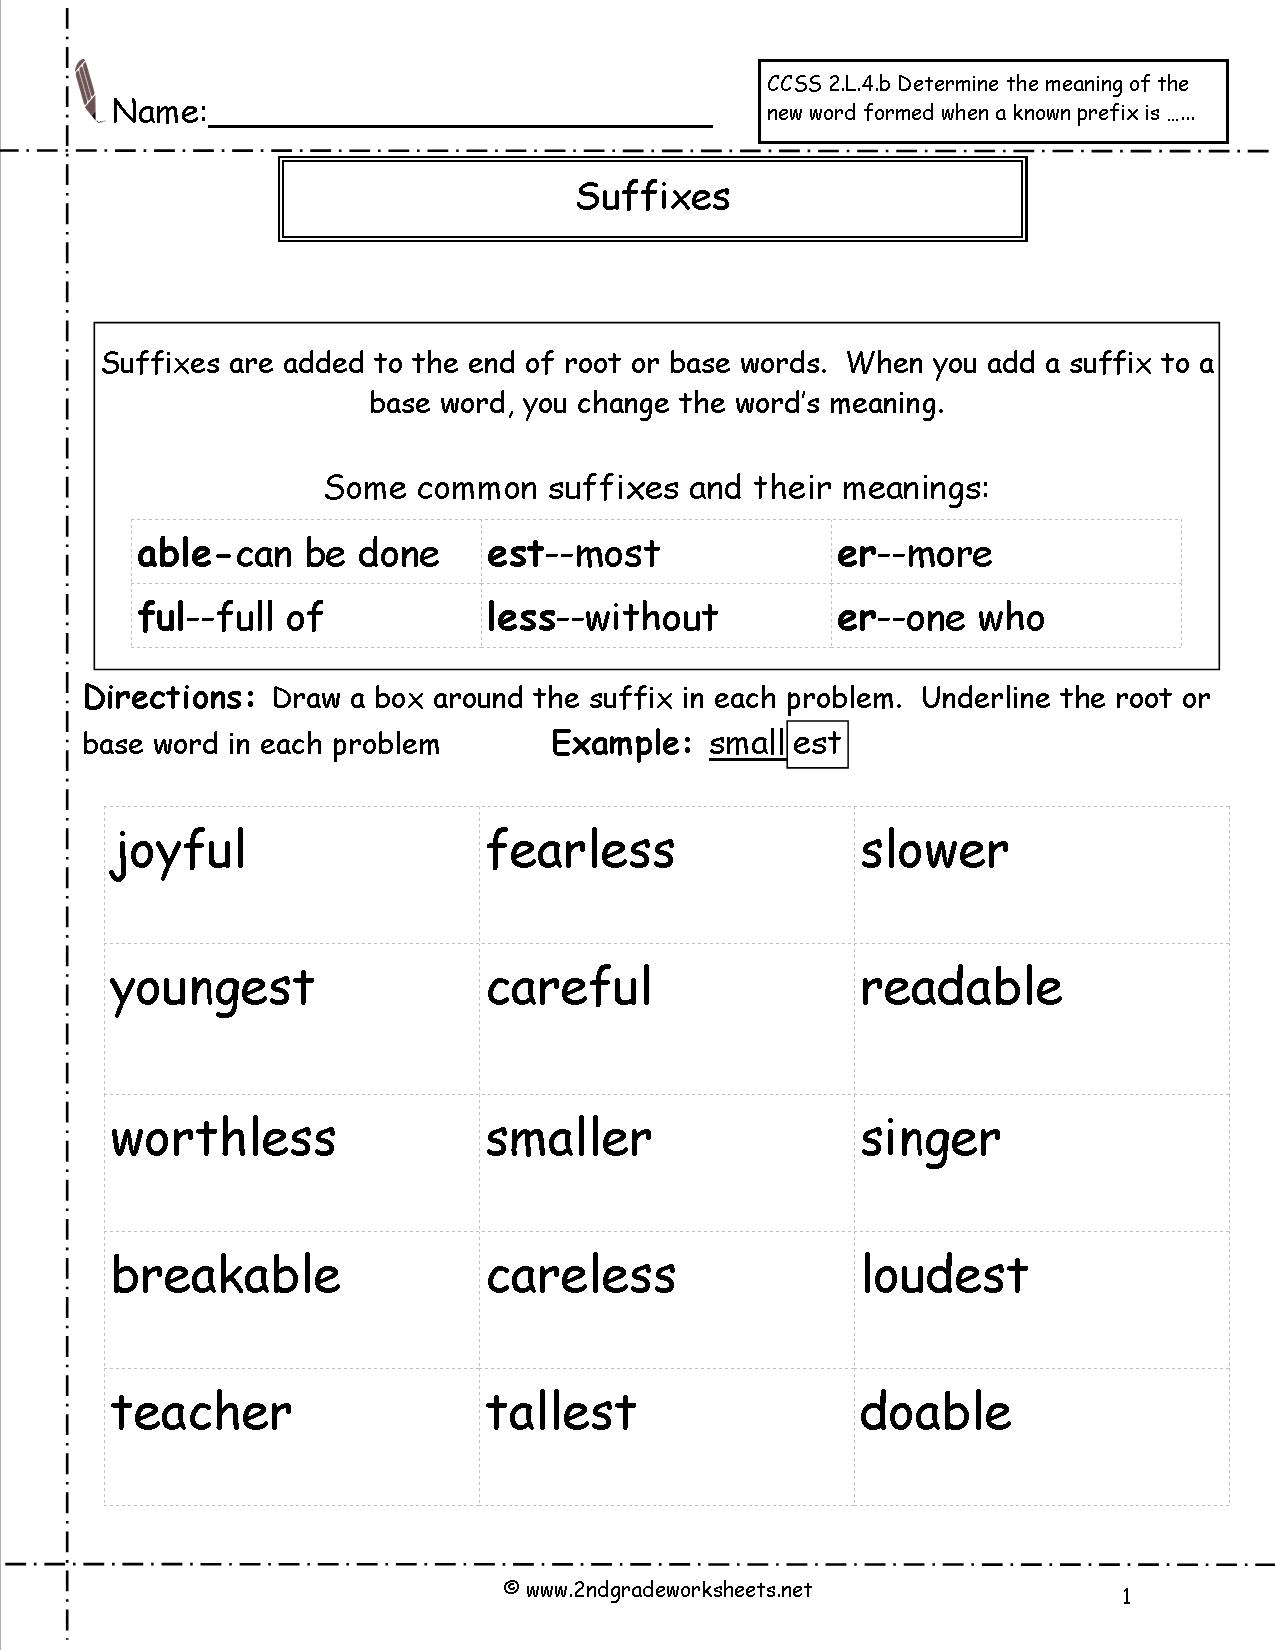 15 Best Images Of Prefixes Suffixes Printable Worksheets Free